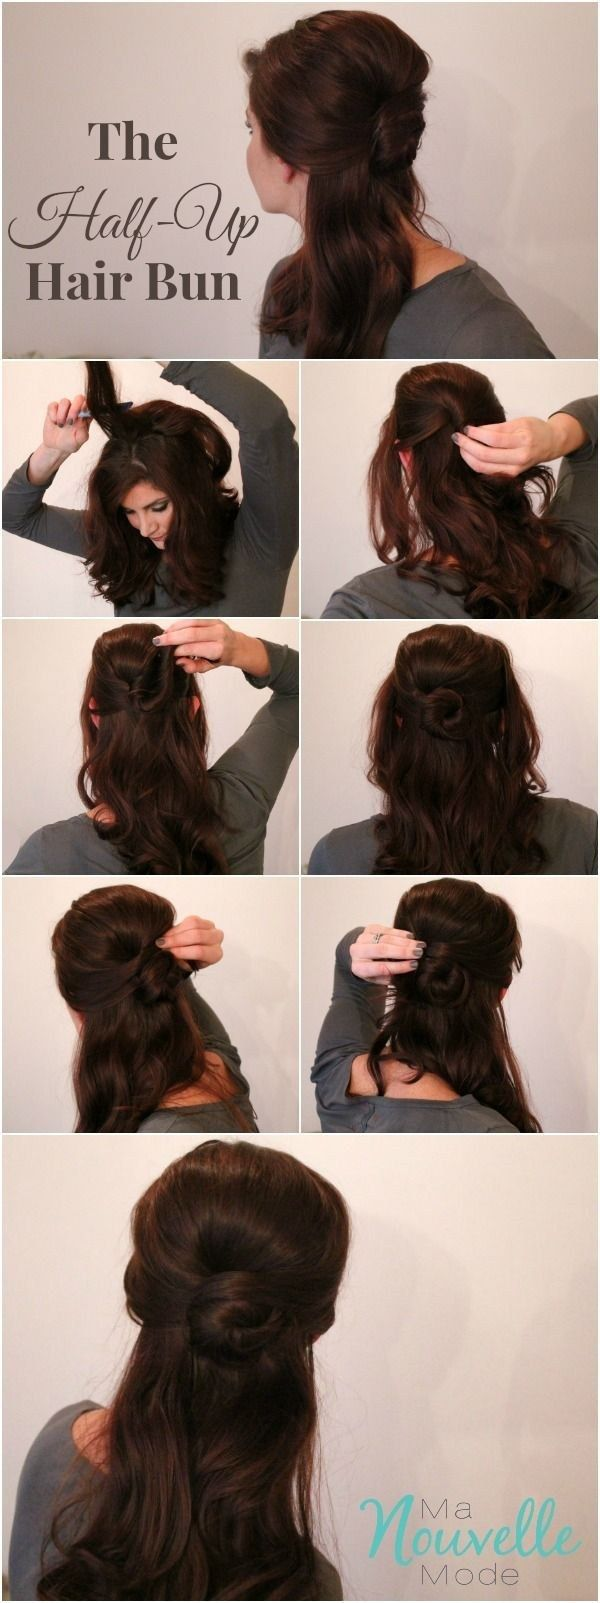 Trendy Braided Hairstyle Tutorial                                                                                                                                                                                 More                                                                                                                                                                                 More